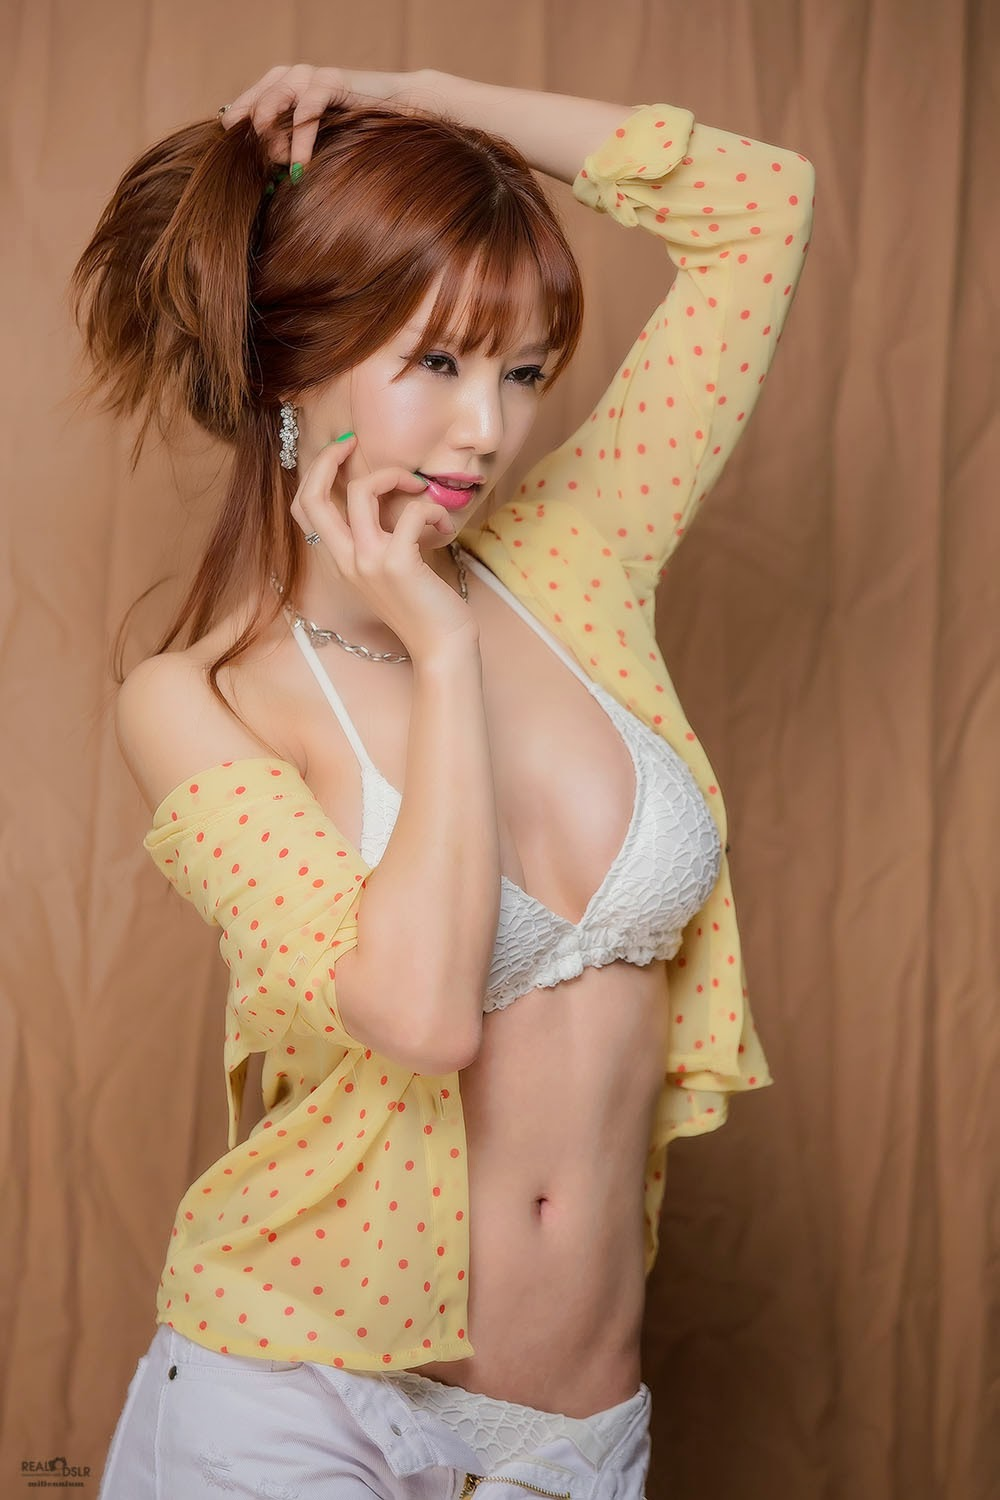 4 Han Min Young - Red, Yellow, & Blue - very cute asian girl-girlcute4u.blogspot.com